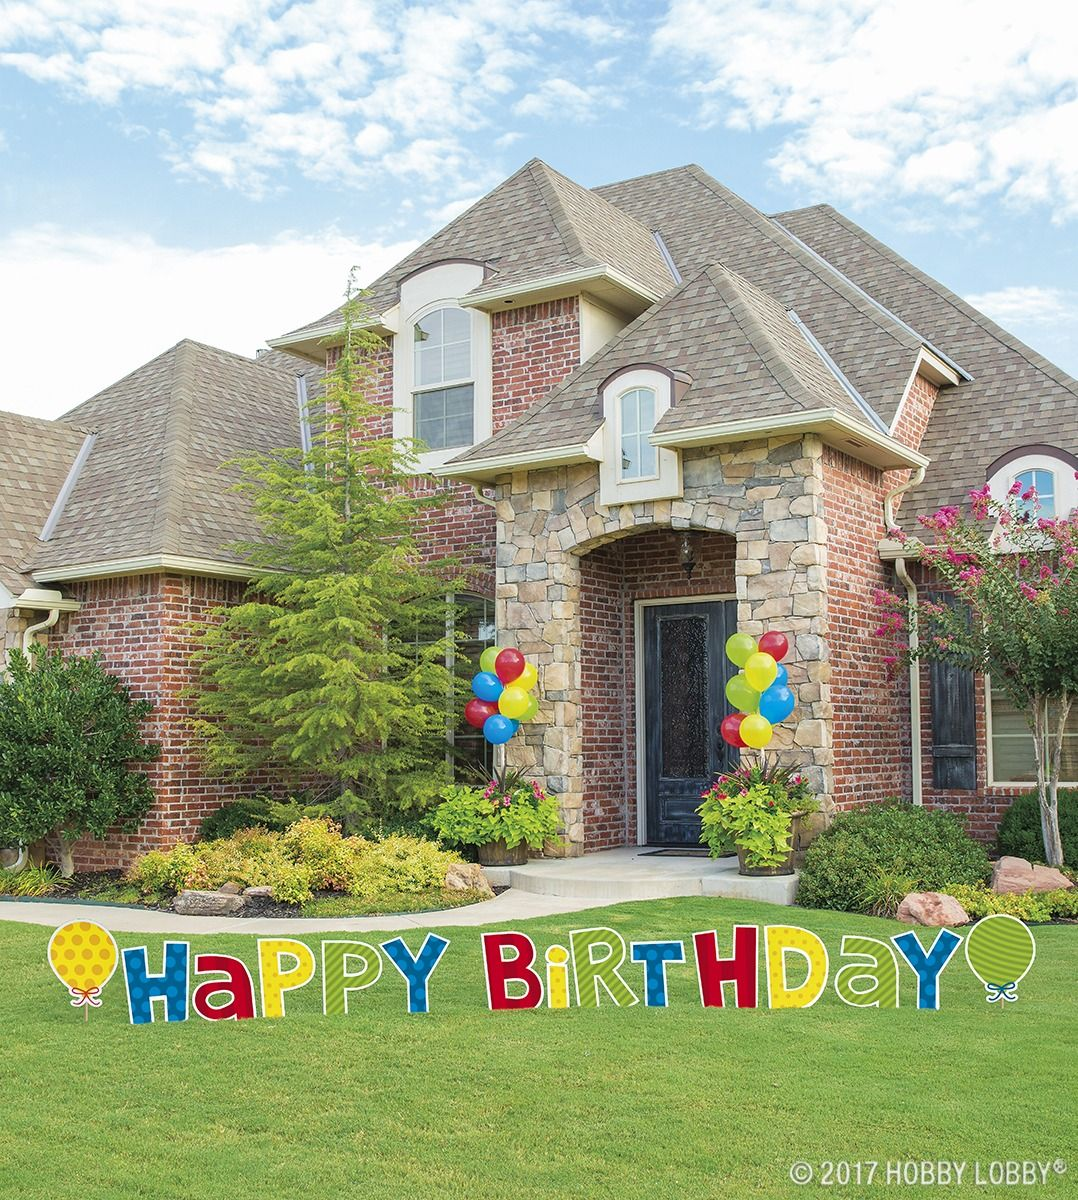 Supersize Your Party Decor With Our Wide Selection Of Jumbo Lawn Signs Birthday Yard